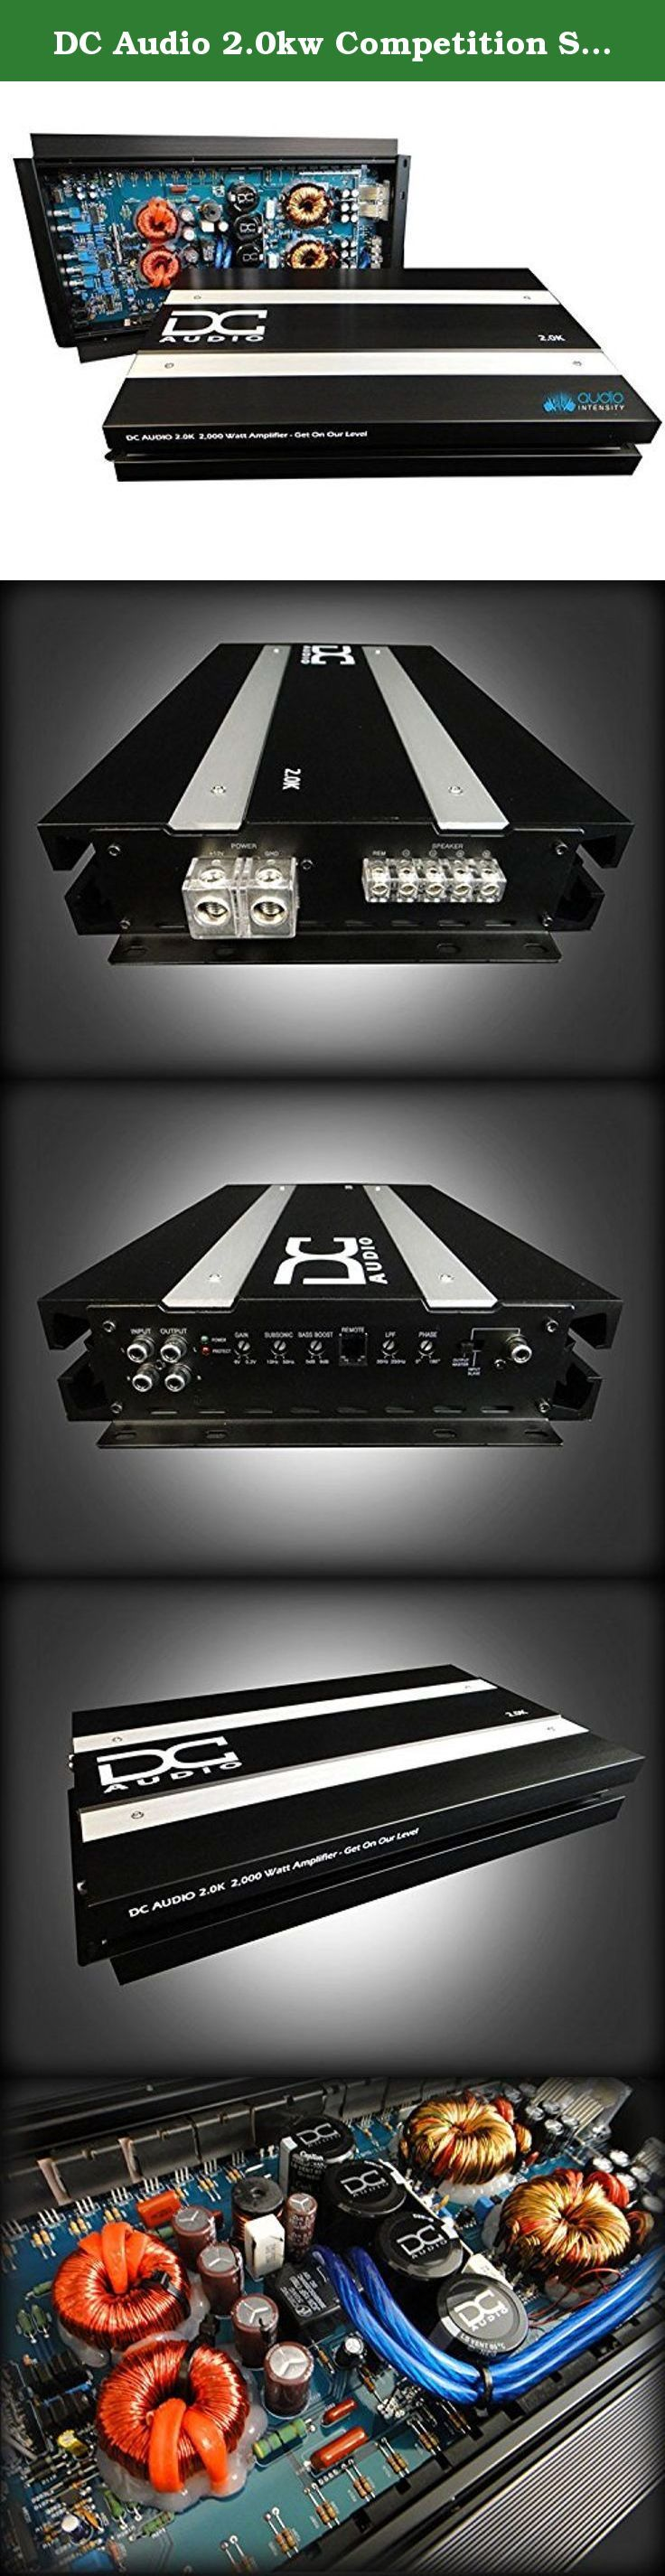 Dc audio 2 0kw competition series amplifier brand new 2 000 watts authorized dealer the 2 0kw competition series amplifier is a 2 000 watt mono